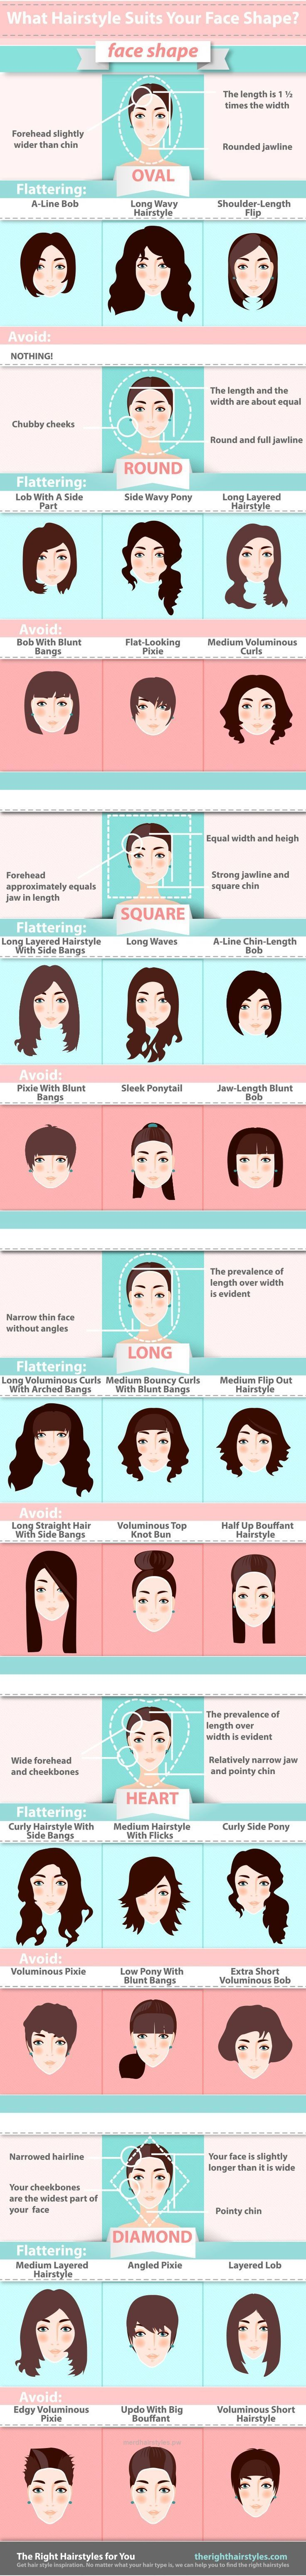 Incredible infographic | The Ultimate Hairstyle Guide For Your Face Shape  The post  infographic | The Ultimate Hairstyle Guide For Your Face Shape…  appeared first on  Merdis Haircuts .